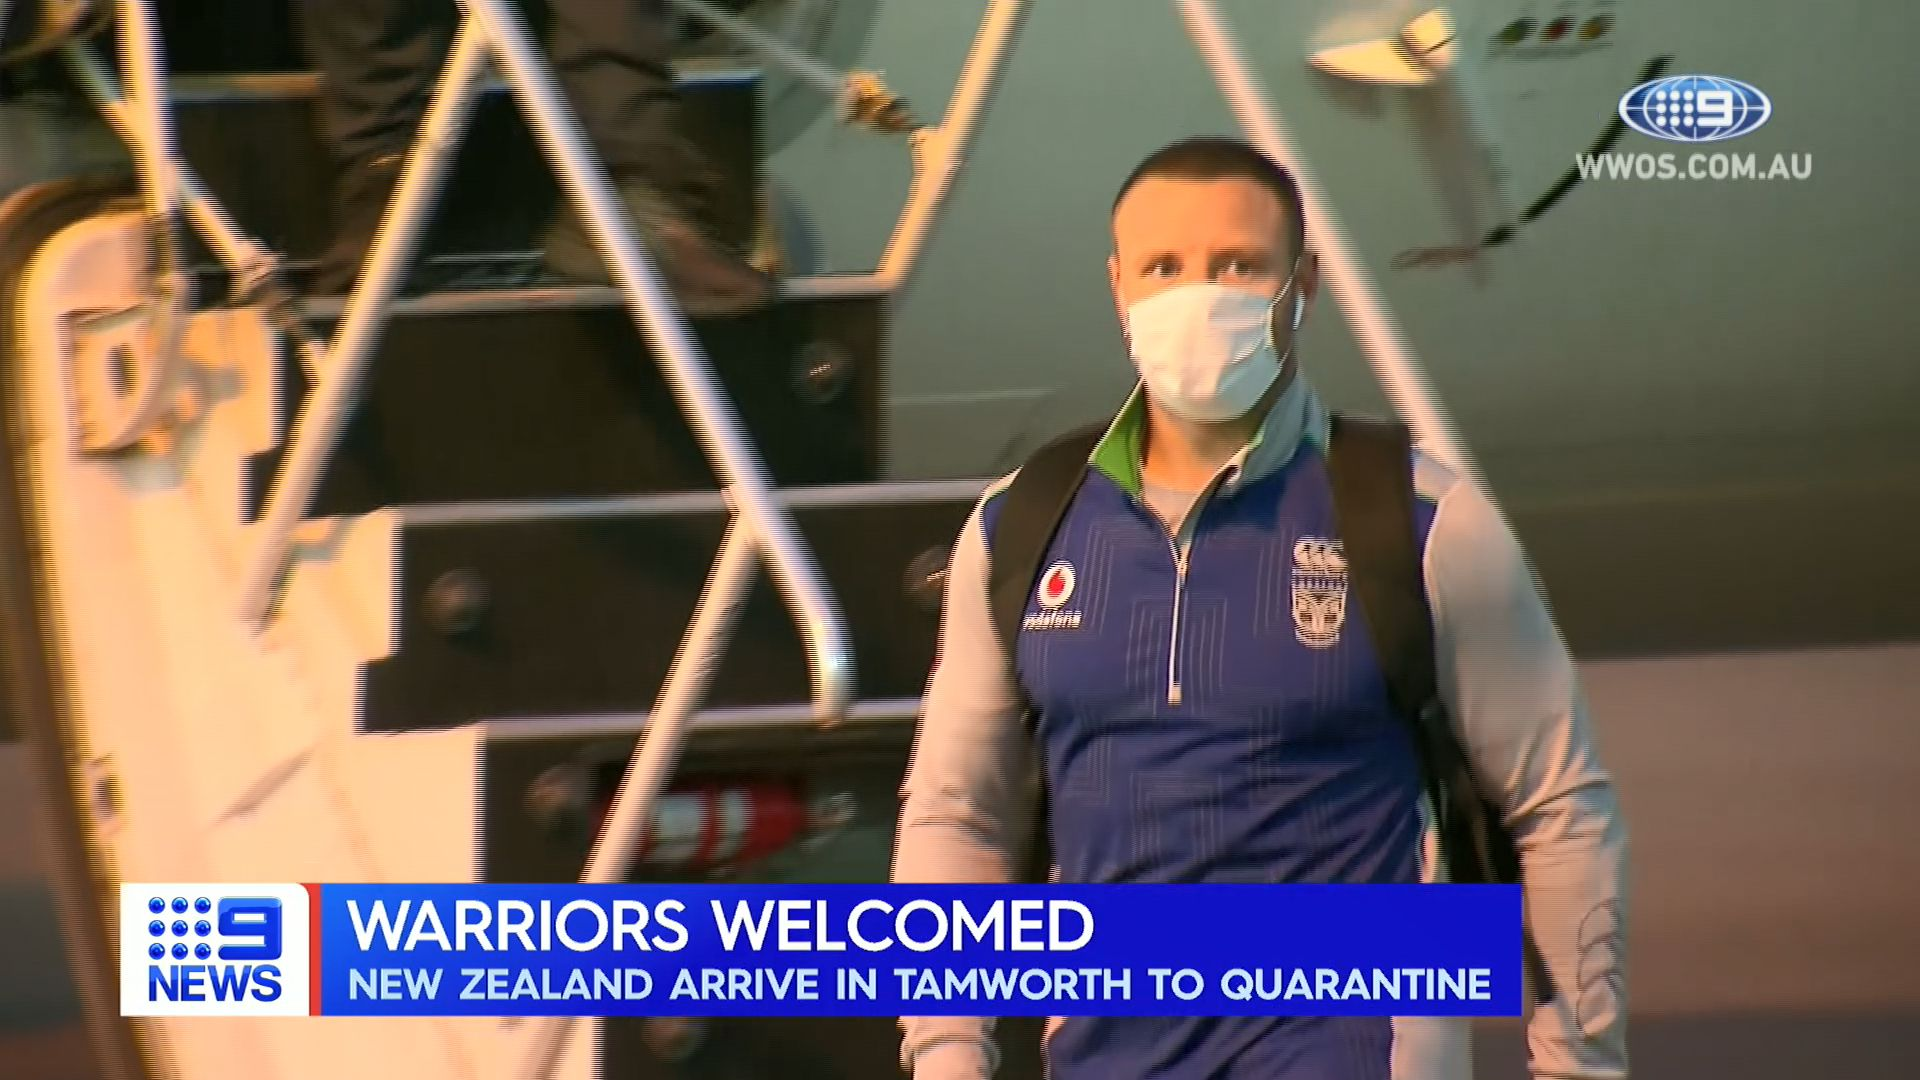 'Tough work if you had three kids in a hotel room': Warriors seeking family quarantine exemption